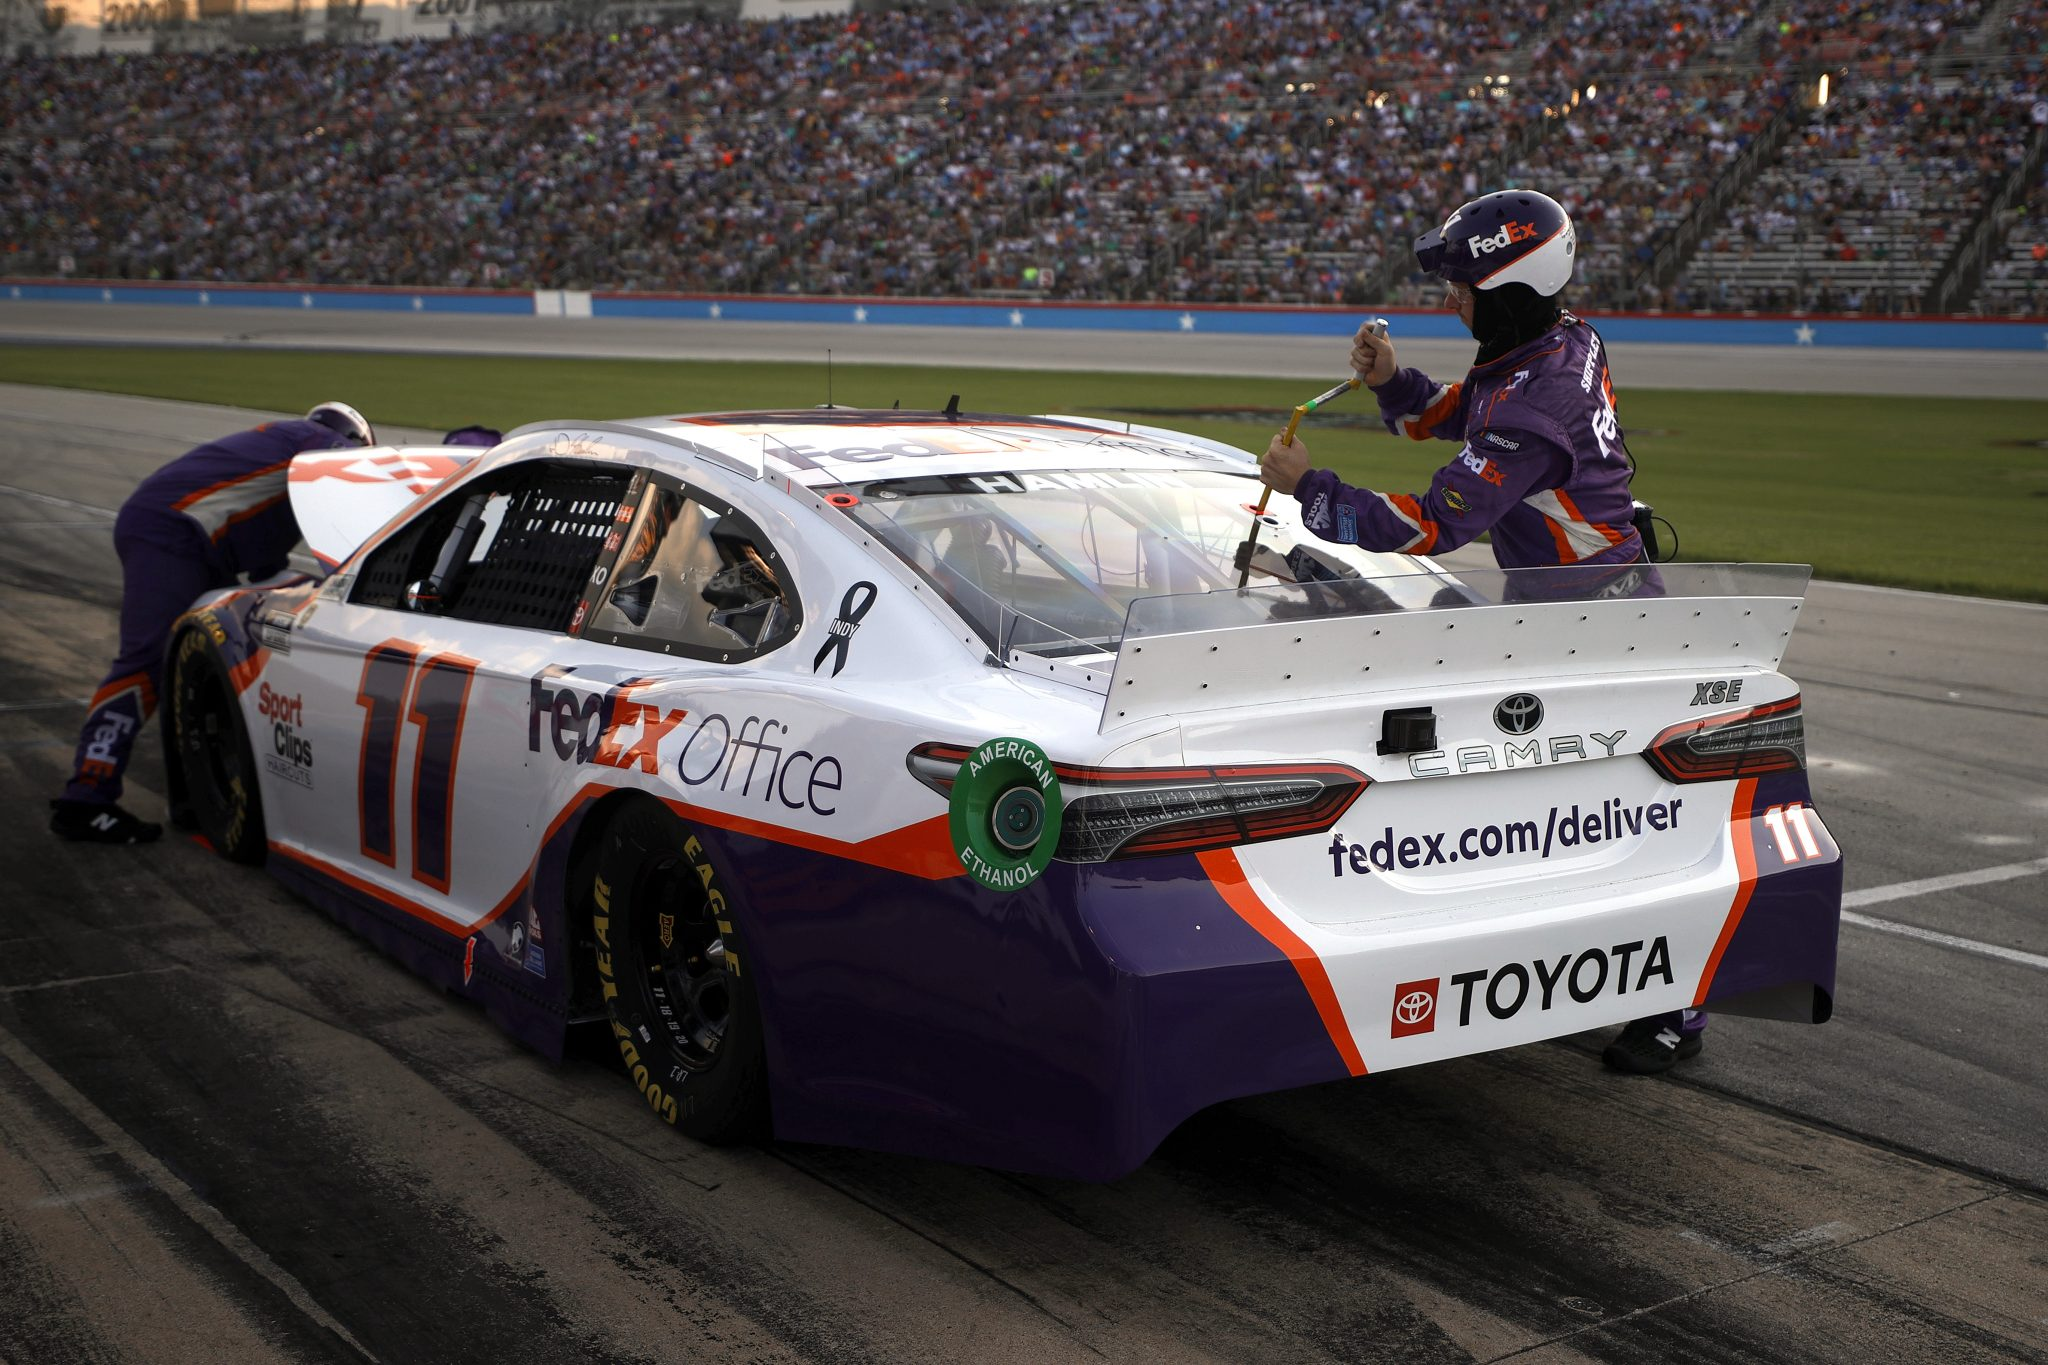 FORT WORTH, TEXAS - JUNE 13: Denny Hamlin, driver of the #11 FedEx Office Toyota, pits during the NASCAR All-Star Race at Texas Motor Speedway on June 13, 2021 in Fort Worth, Texas. (Photo by Chris Graythen/Getty Images)   Getty Images